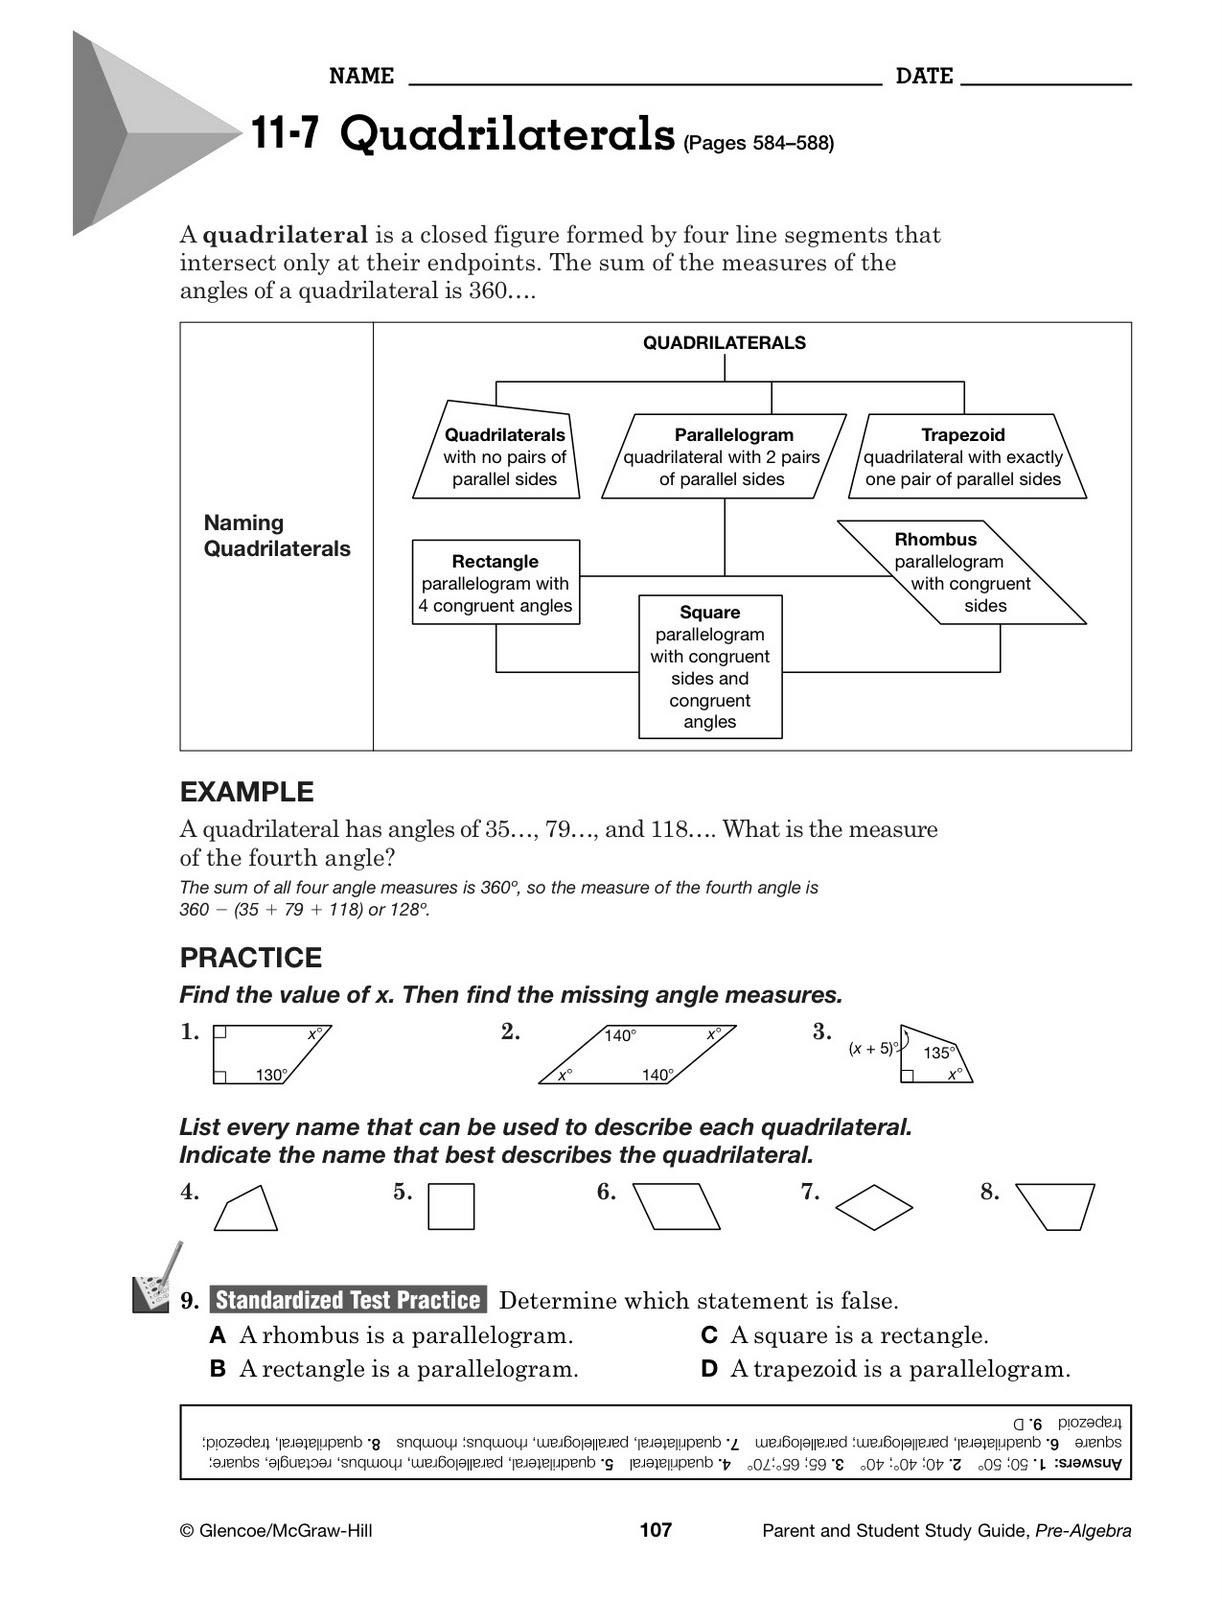 Math Study Guides - SparkNotes